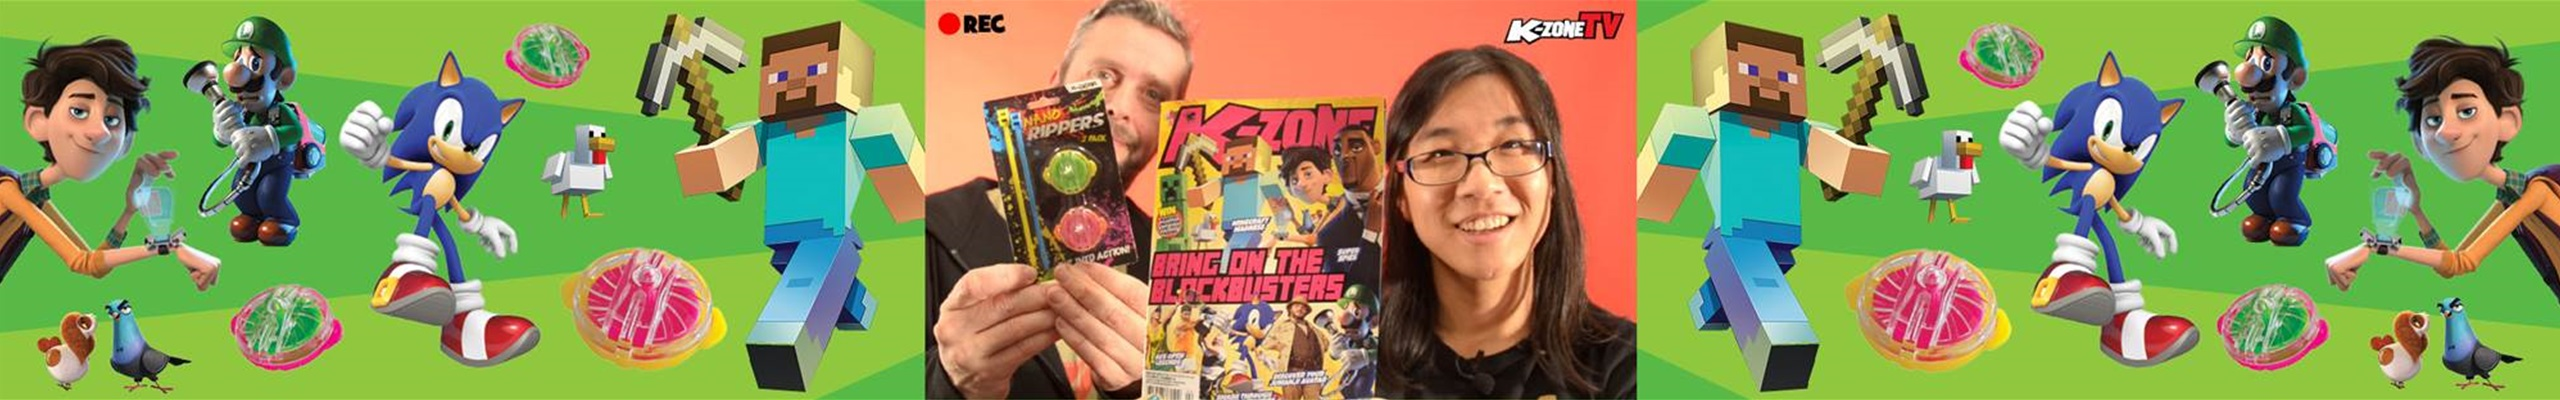 K-Zone TV Episode 58: Bring On The Blockbusters